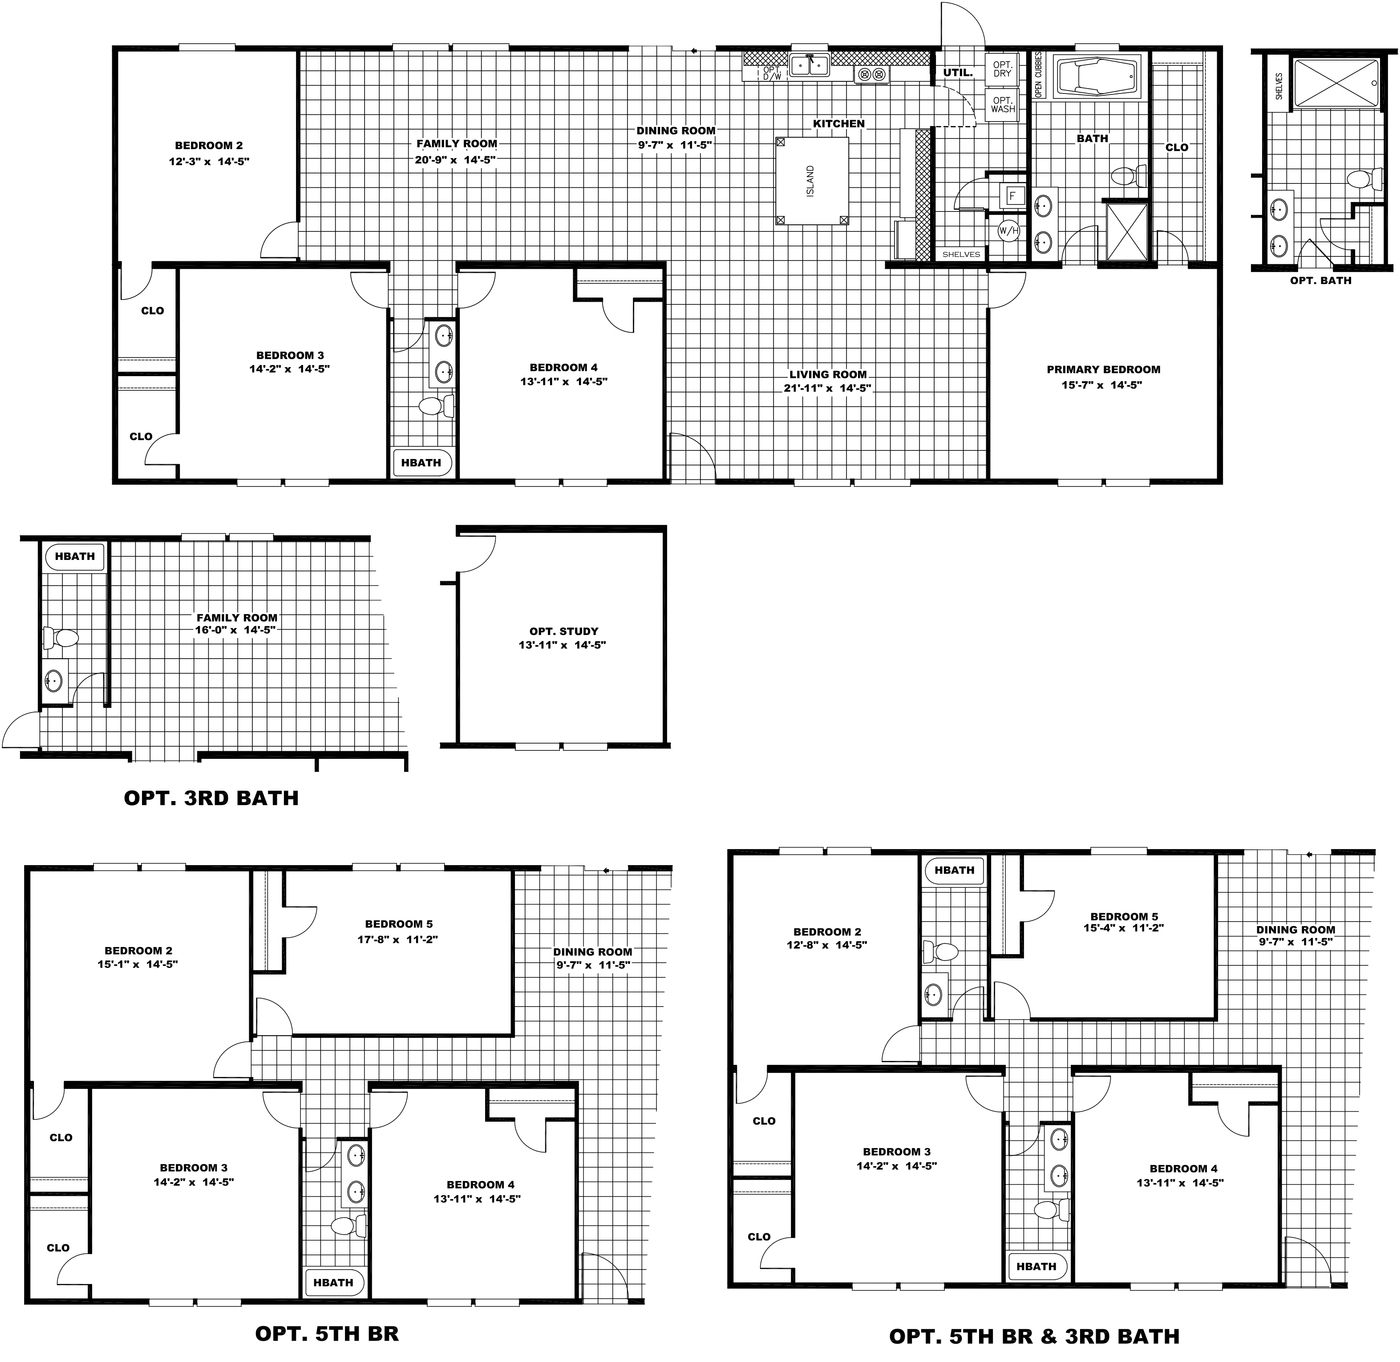 The ULTRA PRO BIG BOY Floor Plan. This Manufactured Mobile Home features 4 bedrooms and 2 baths.